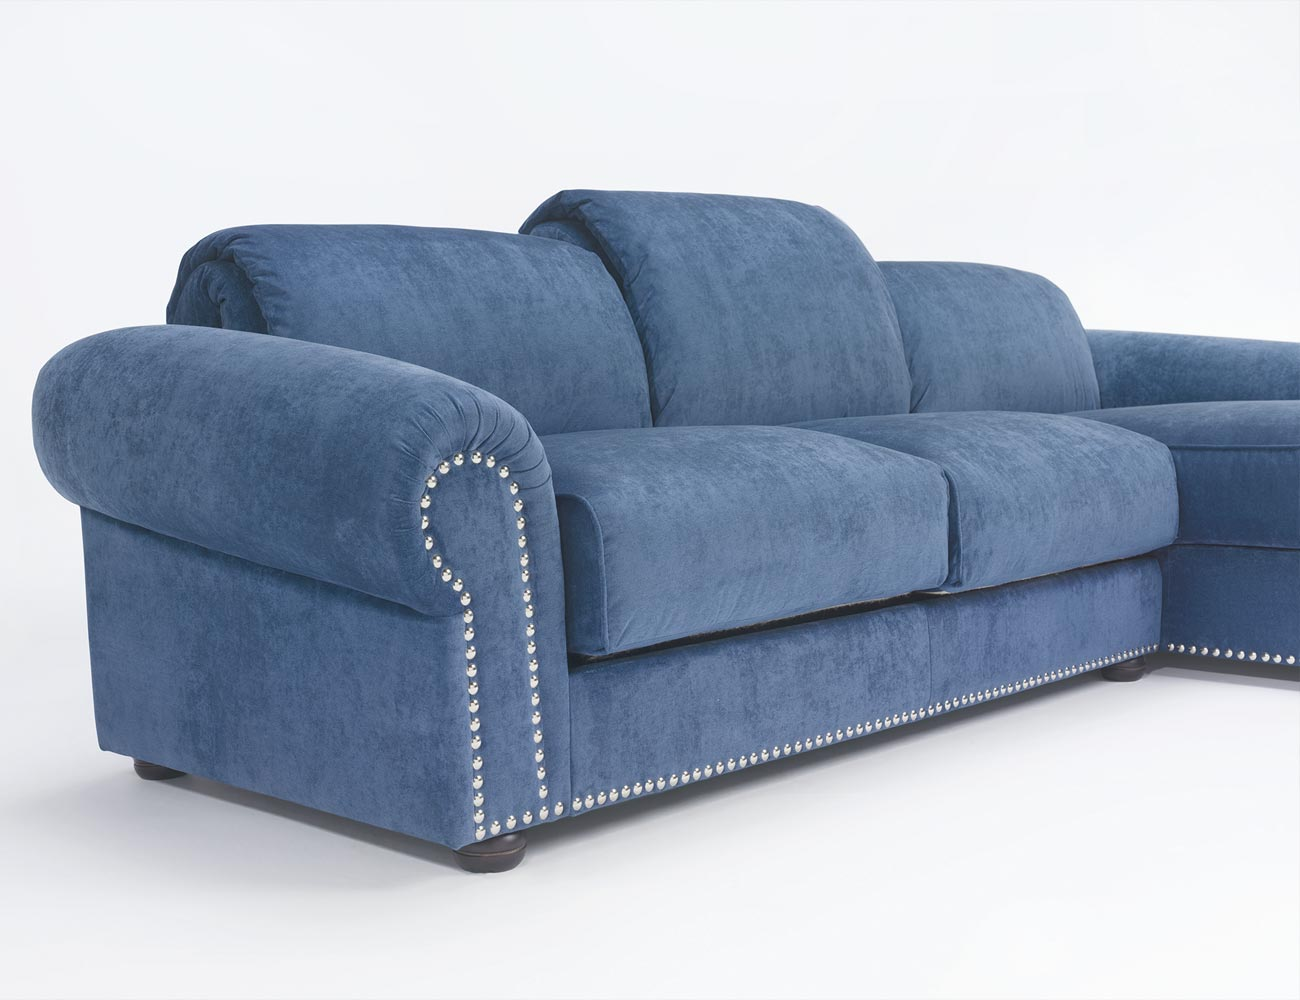 Sofa chaiselongue gran lujo decorativo azul 138